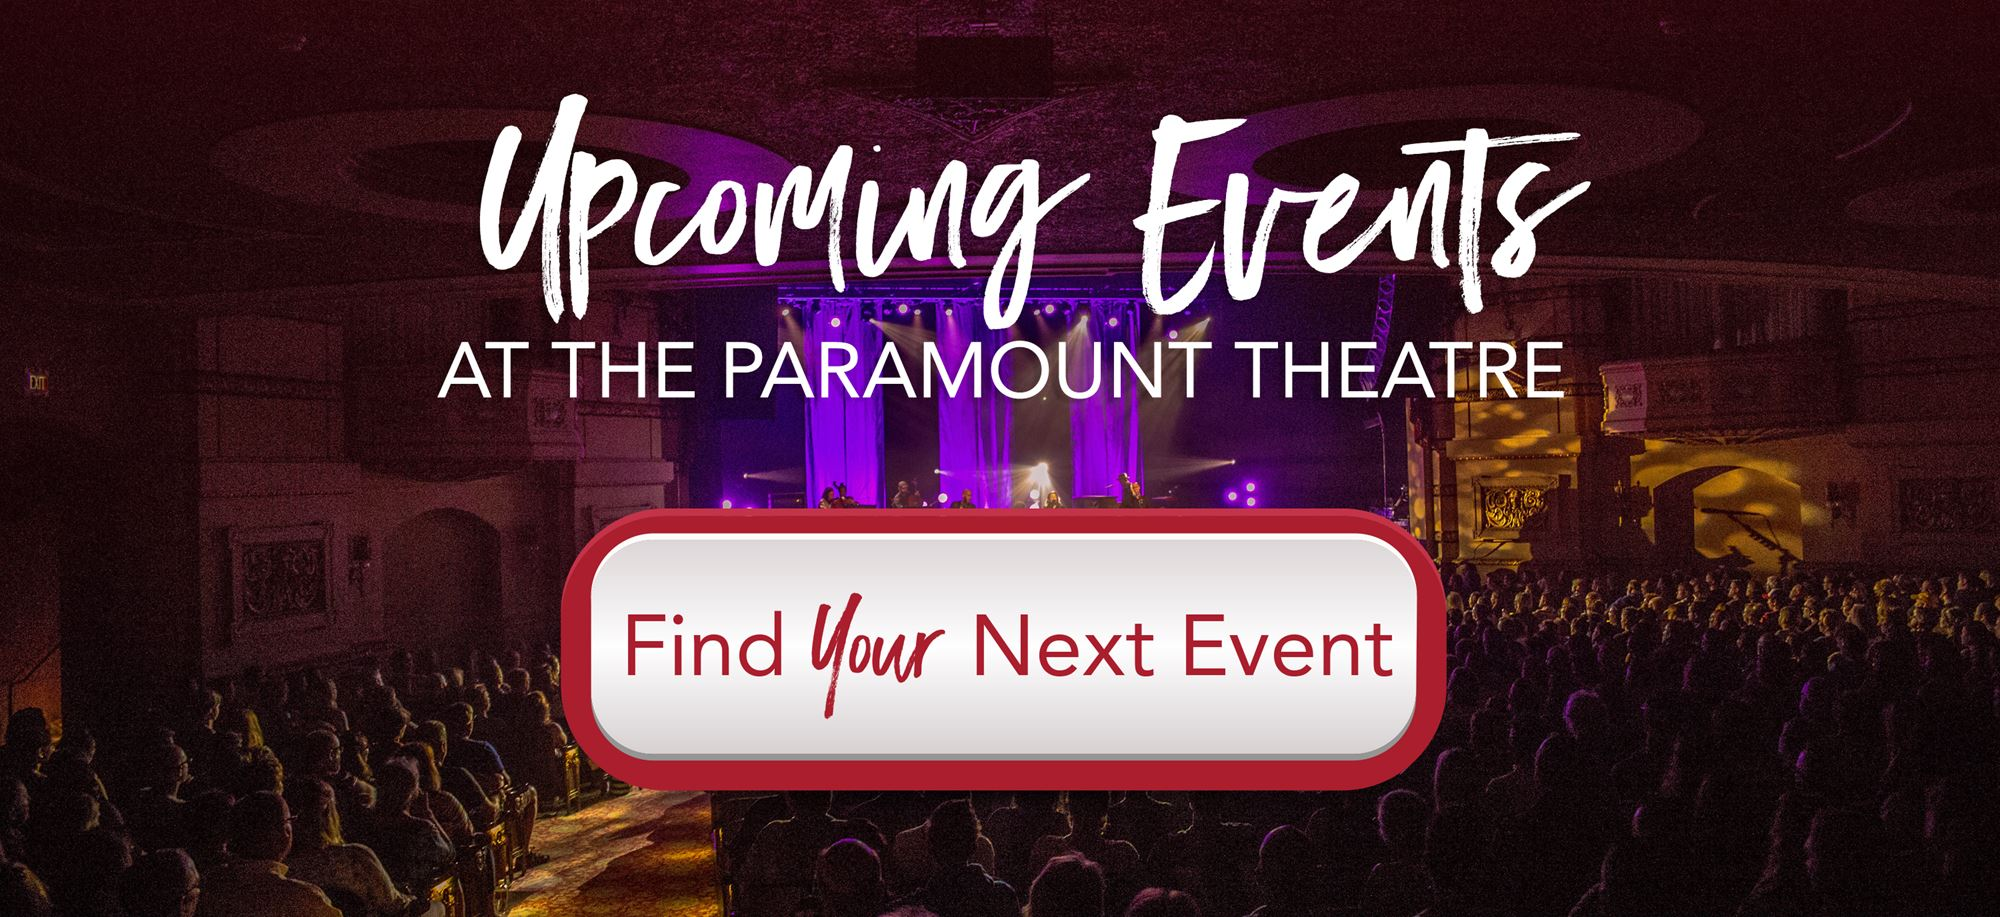 Events at the Paramount Theatre